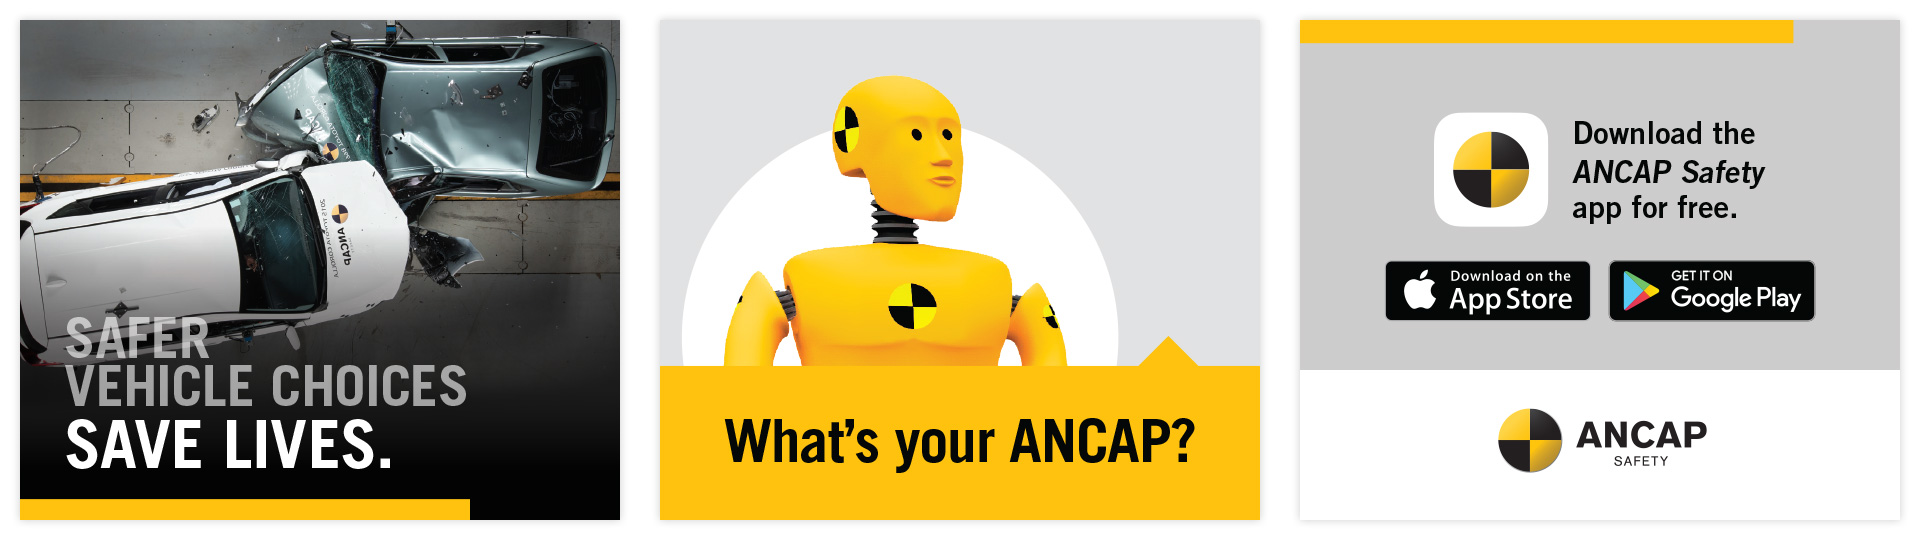 frames for the ANCAP MRec digital advertisement in a variety of formats